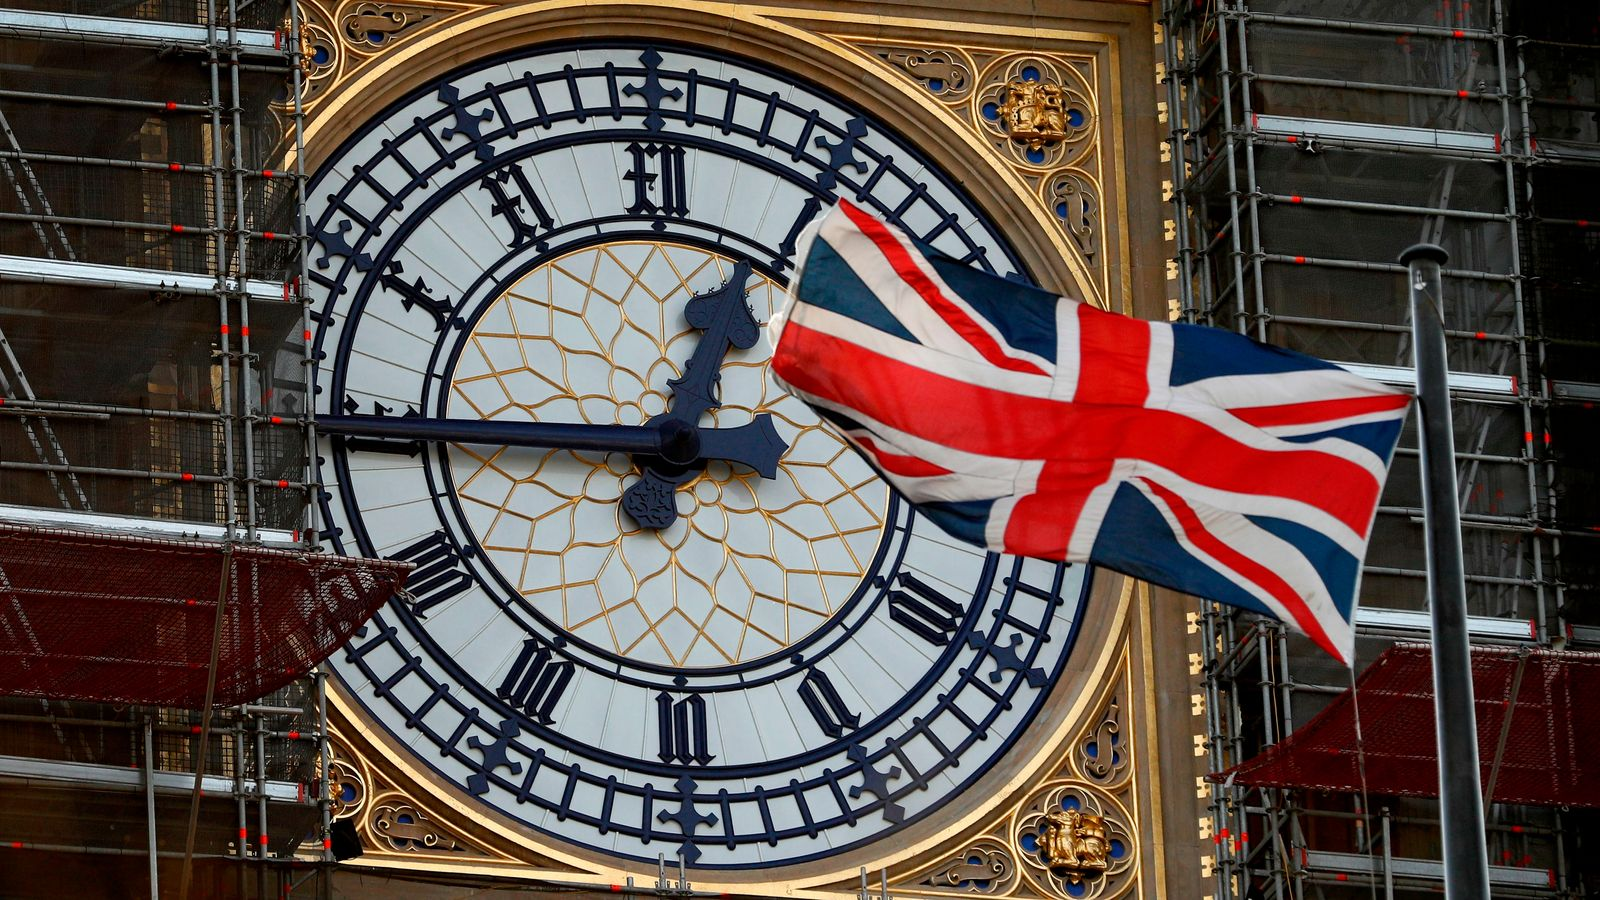 Big Ben to ring again on New Year's Eve | UK News | Sky News